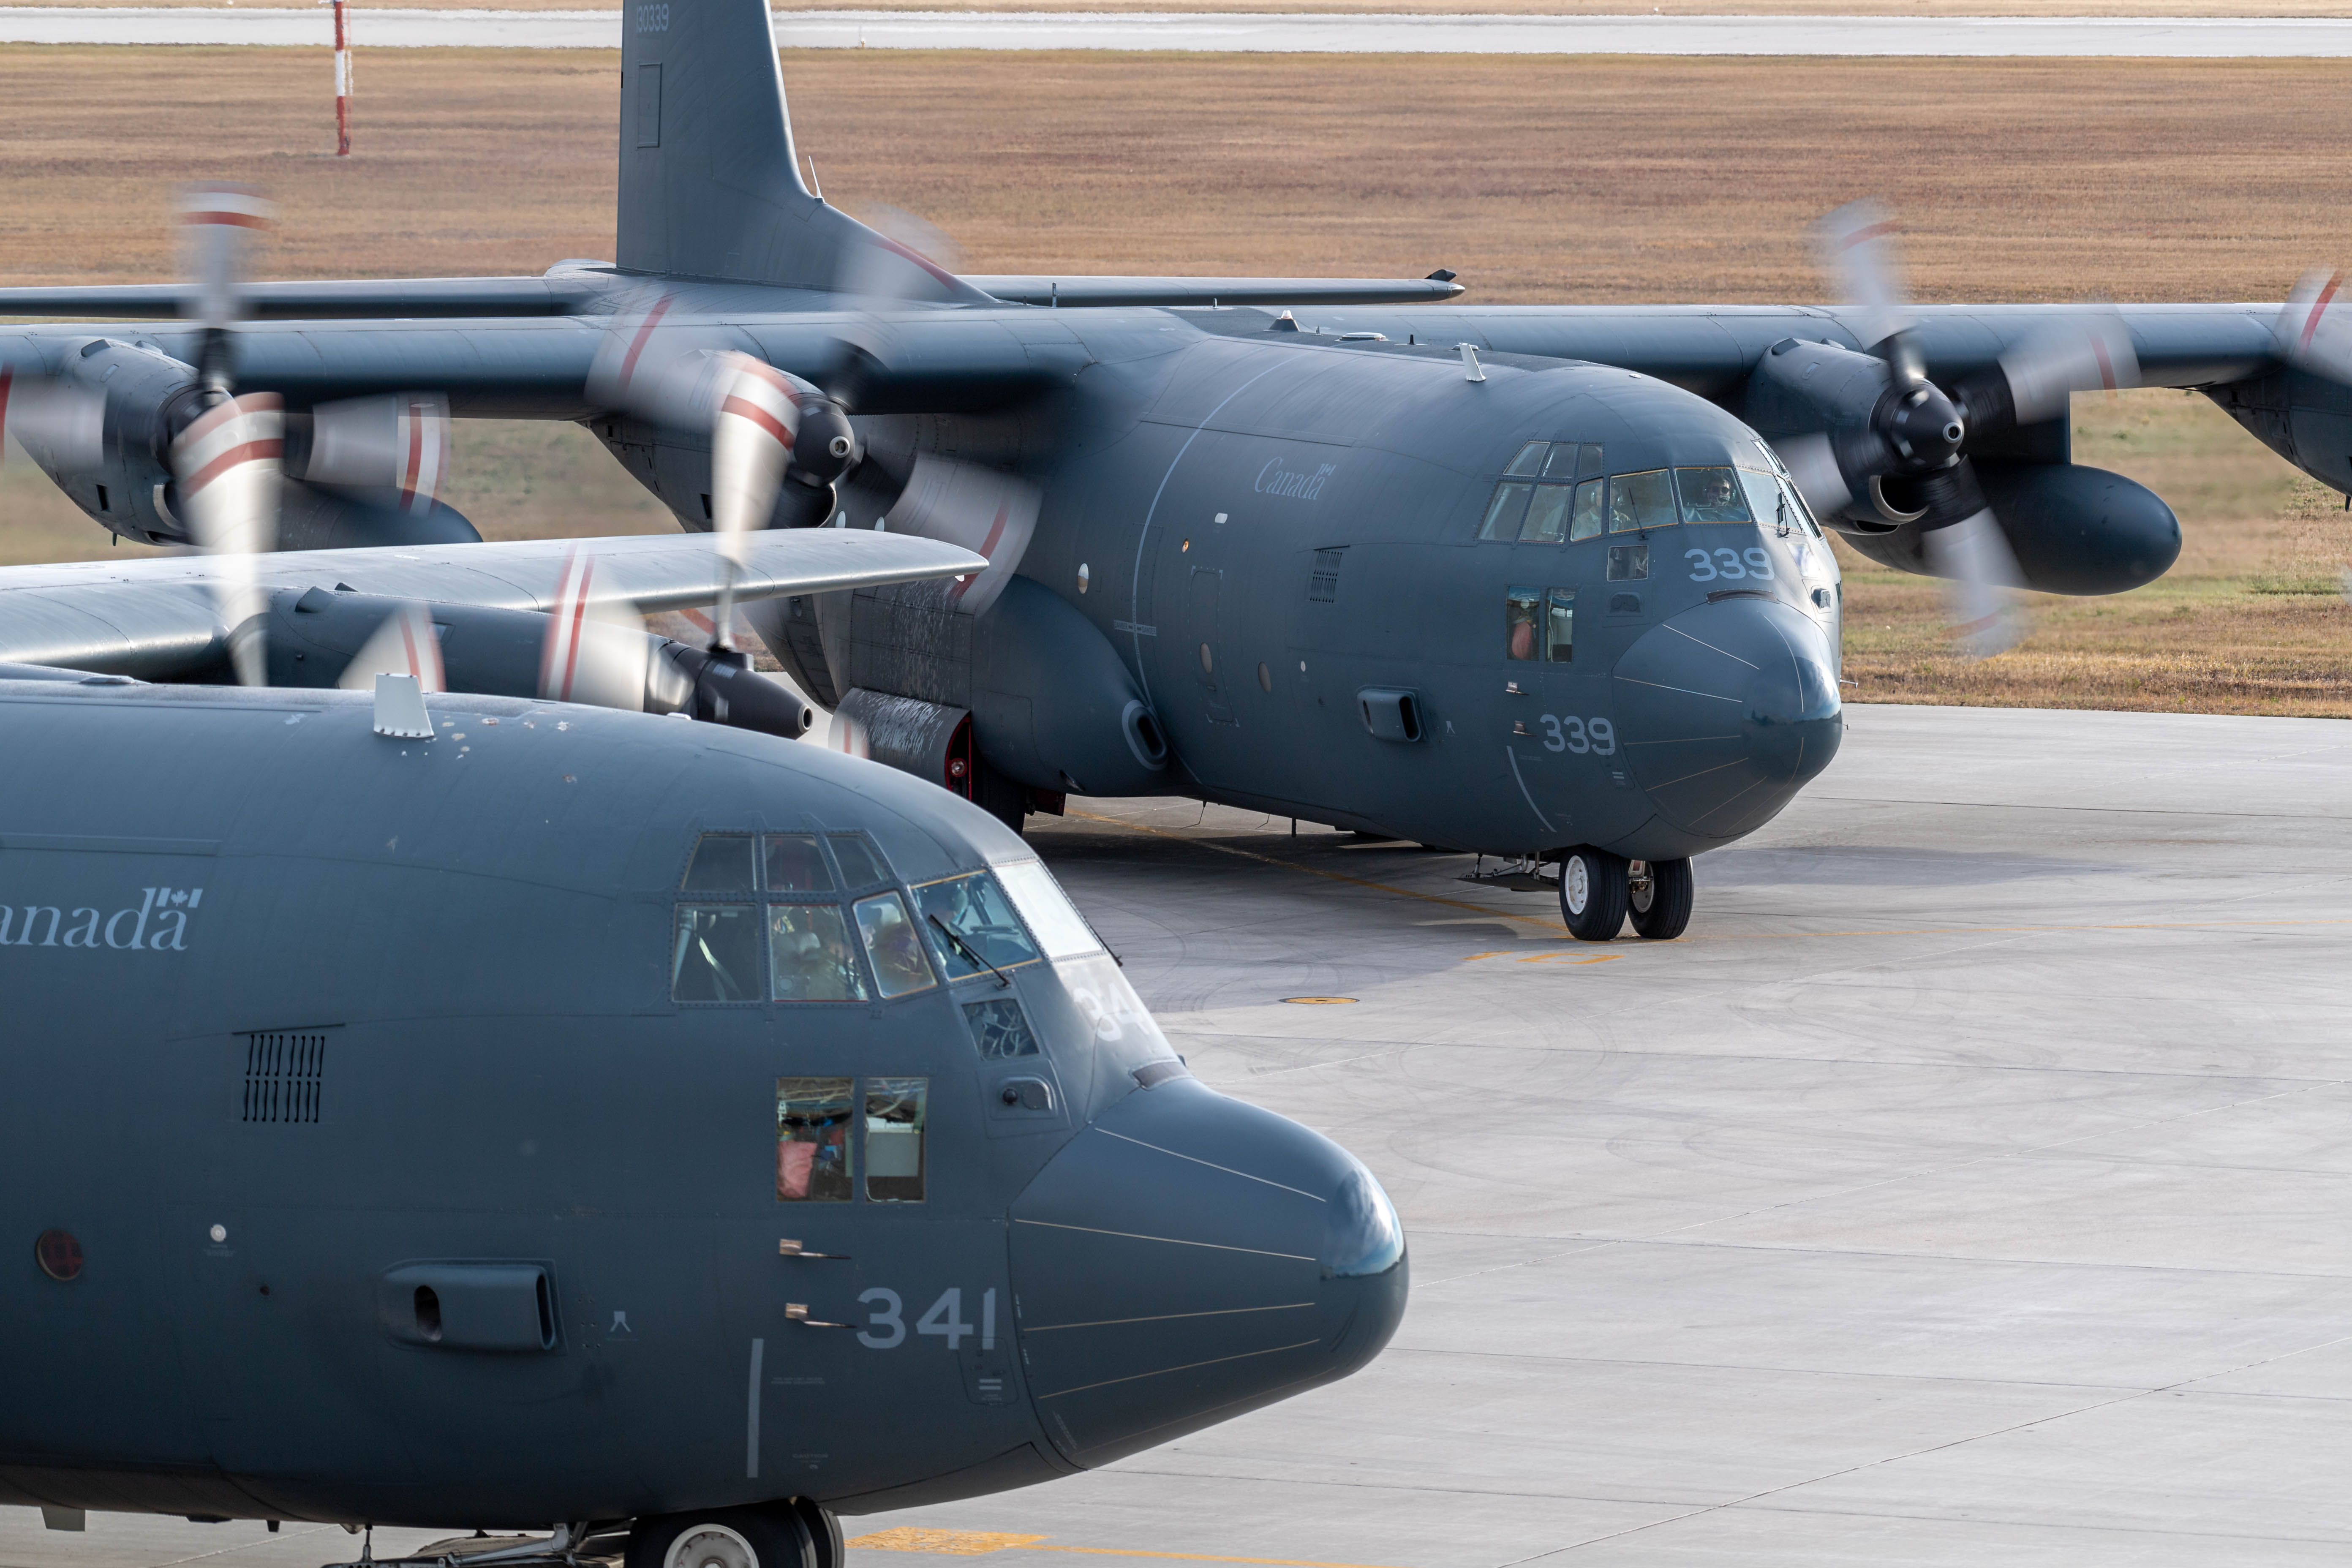 CC-130 Hercules aircraft rolling on the tarmac at 17 Wing Winnipeg, Manitoba, on October 13, 2020, before taking off to fly over Winnipeg to mark the 60th year of service of the aircraft in the Royal Canadian Air Force. PHOTO: Corporal Darryl Hepner